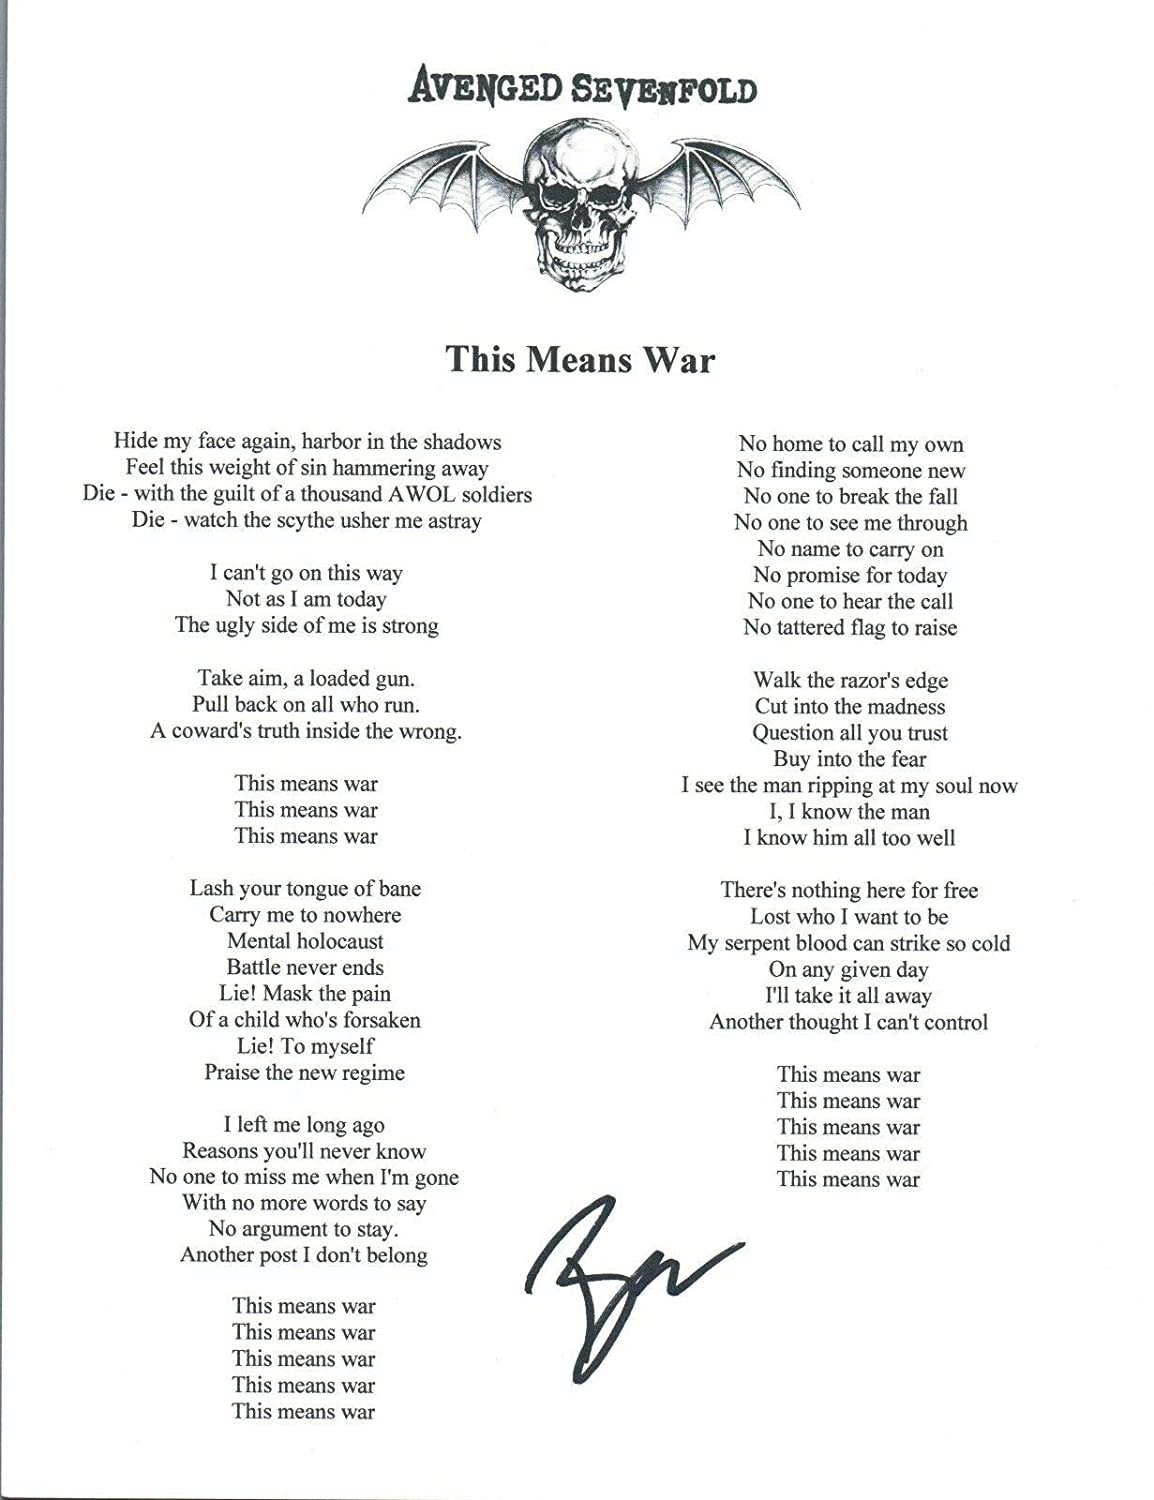 Brooks Wackerman Signed Avenged Sevenfold THIS MEANS WAR Song Lyric